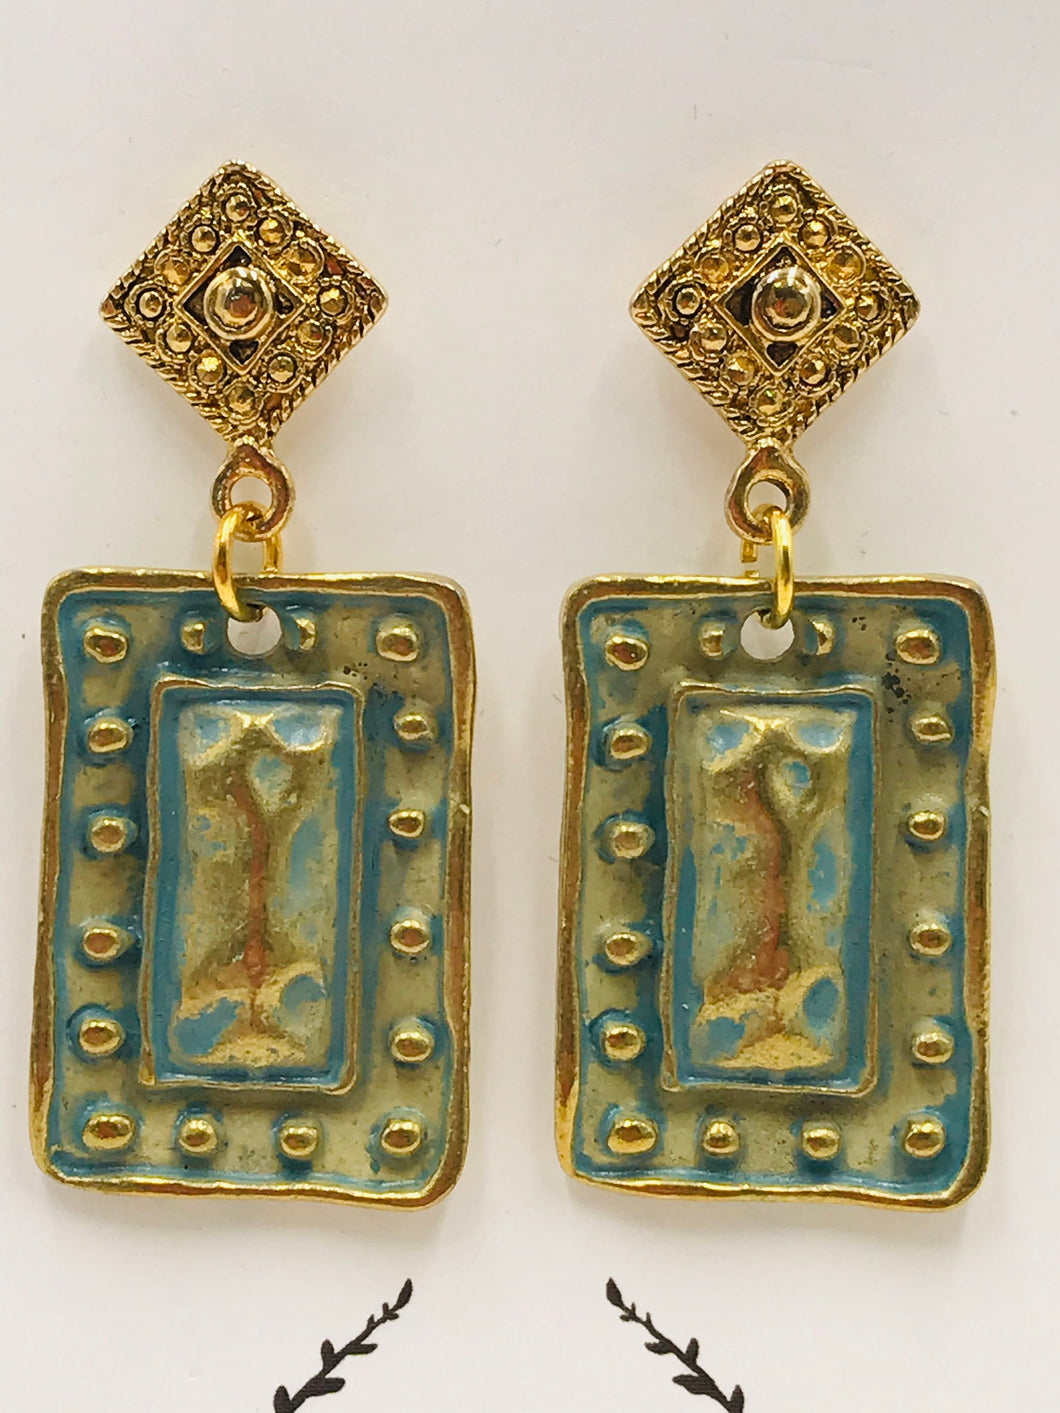 Artisan Gold with Verdigris